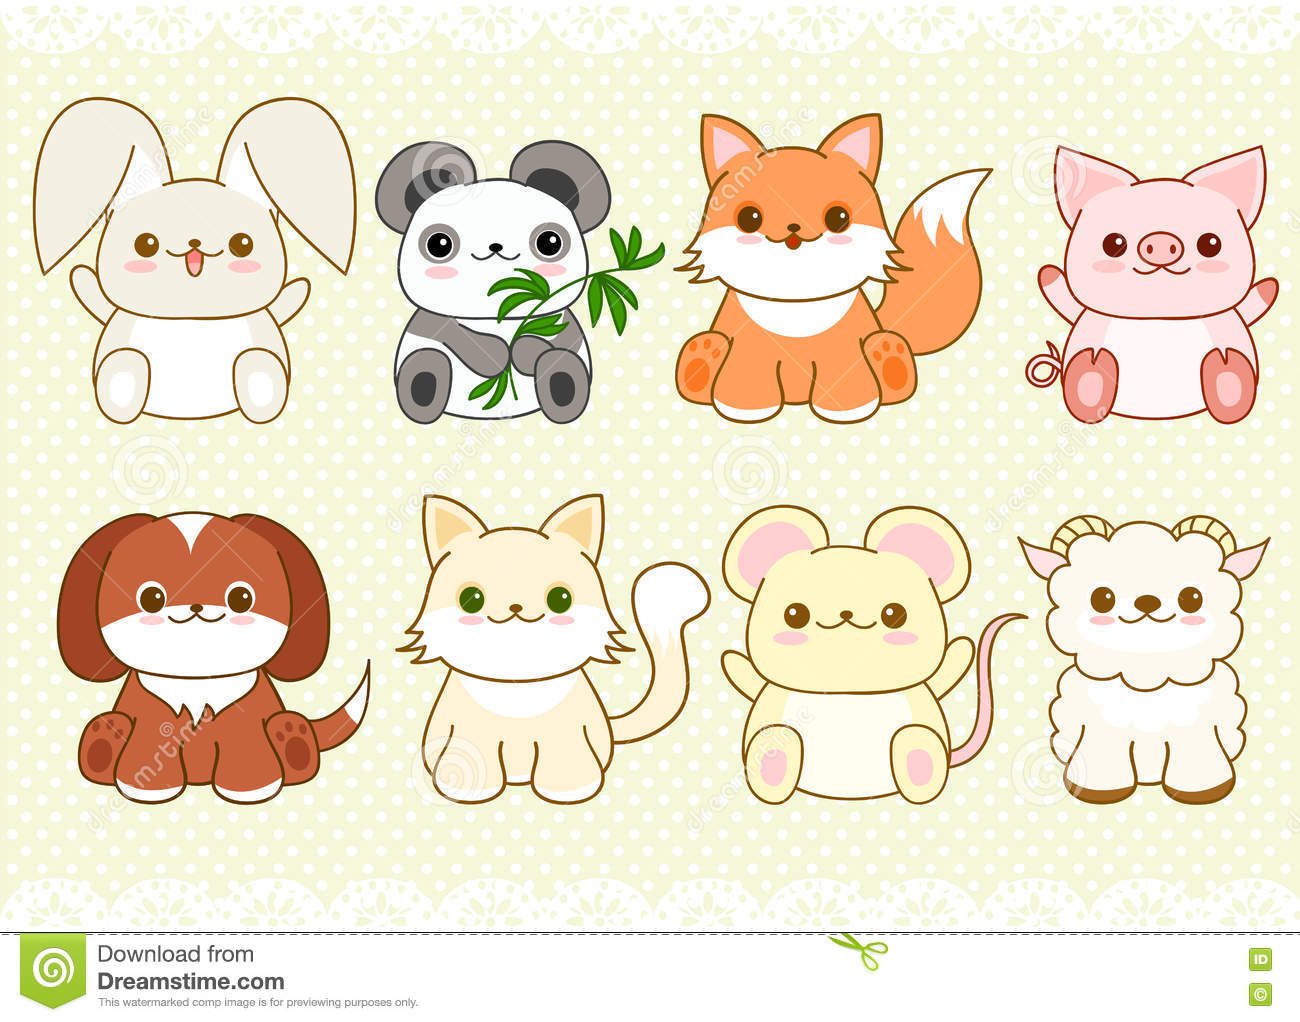 Cute Dog Christmas Pics Wallpaper Set Of Cute Baby Animals In Kawaii Style Stock Vector